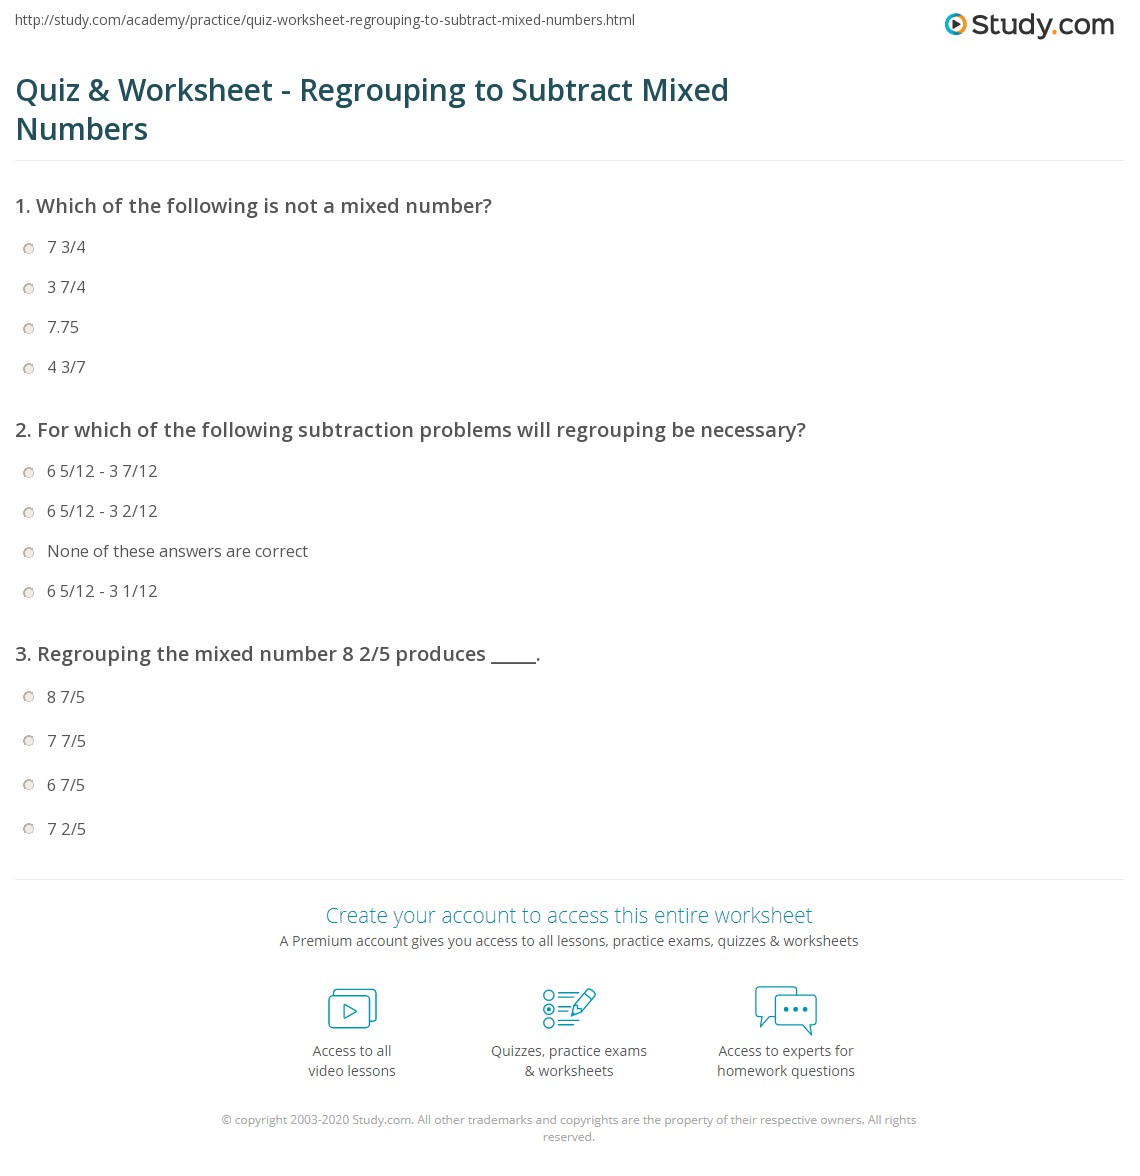 Quiz and Worksheet Regrouping to Subtract Mixed Numbers – Subtracting Mixed Numbers with Regrouping Worksheets